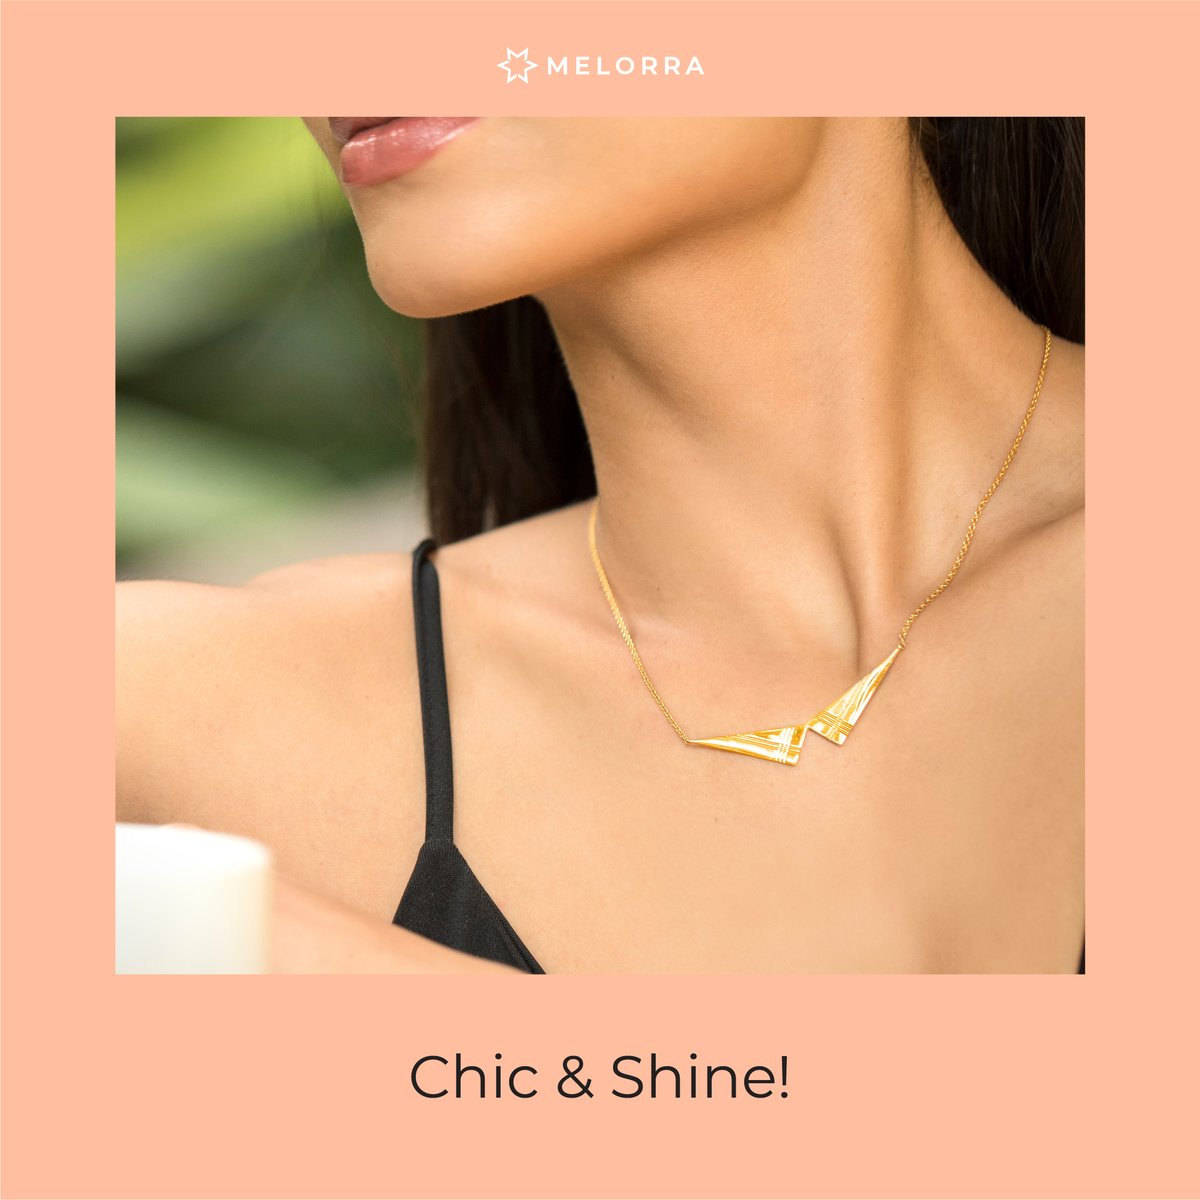 Who doesn't like slipping into something comfy, teamed with a statement piece and a nice cuppa accompanying us while working from home? Well, it sounds refreshing. And for your in-between work-breaks, check out this necklet and more >  #Melorra #ShopOnline